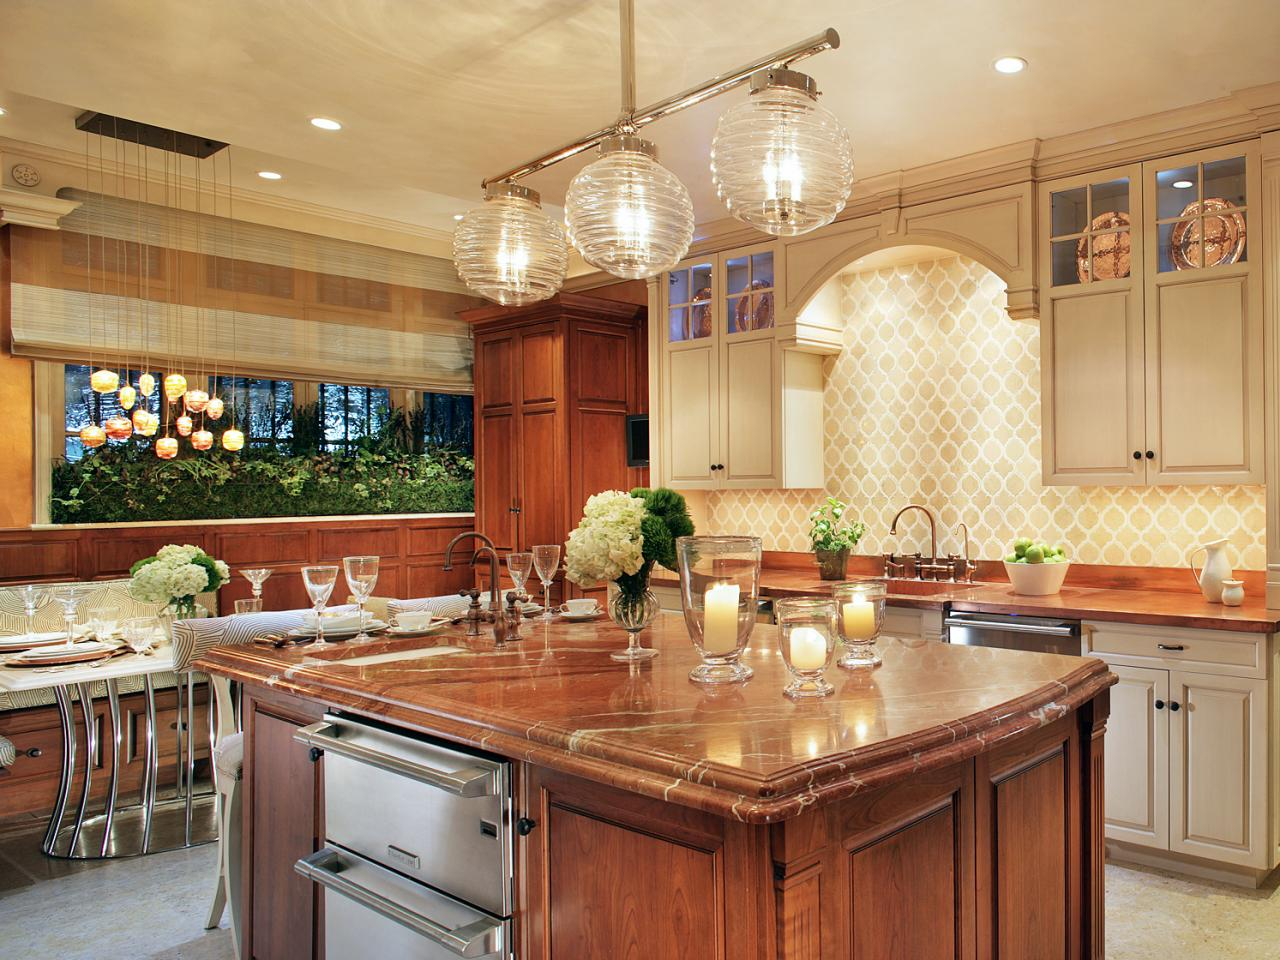 5 Simple Kitchen Lighting Tips You Need to Know in 2018 - Candles in Kitchen